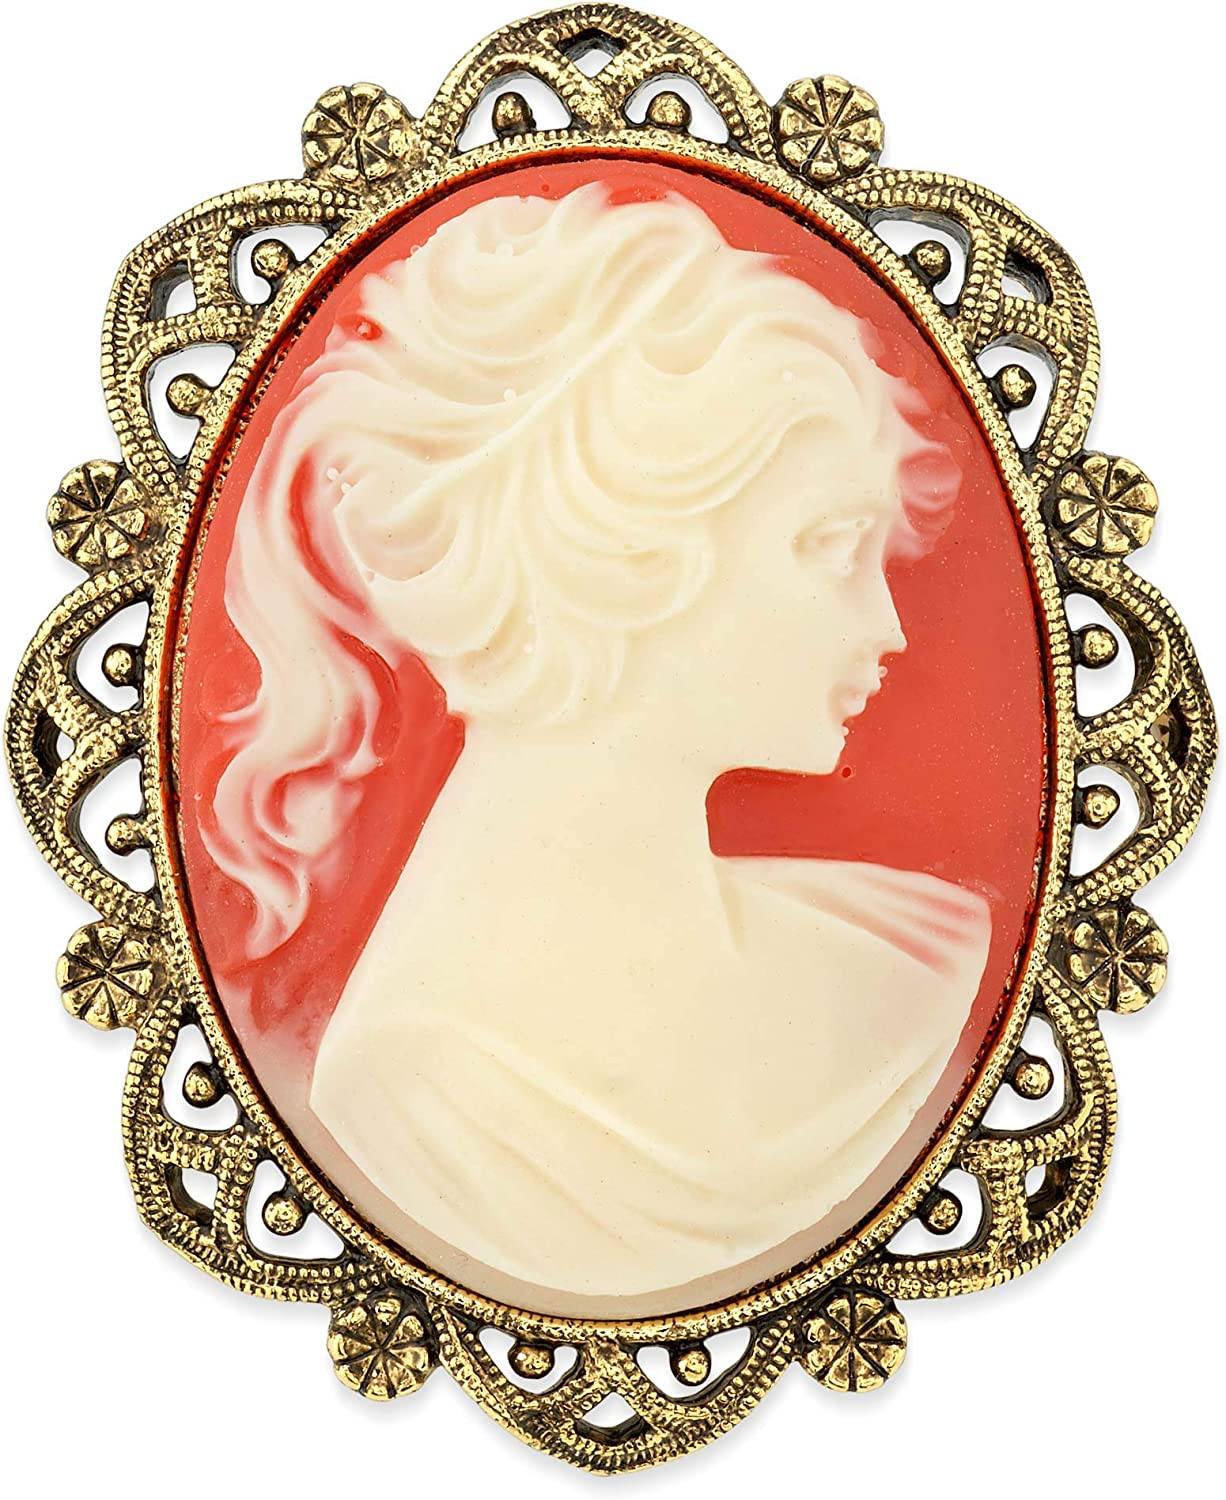 1928 Jewelry Vintage Inspired Costume Elizabeth Oval Cameo Brooch in Gold Tone with Carnelian Style Stone